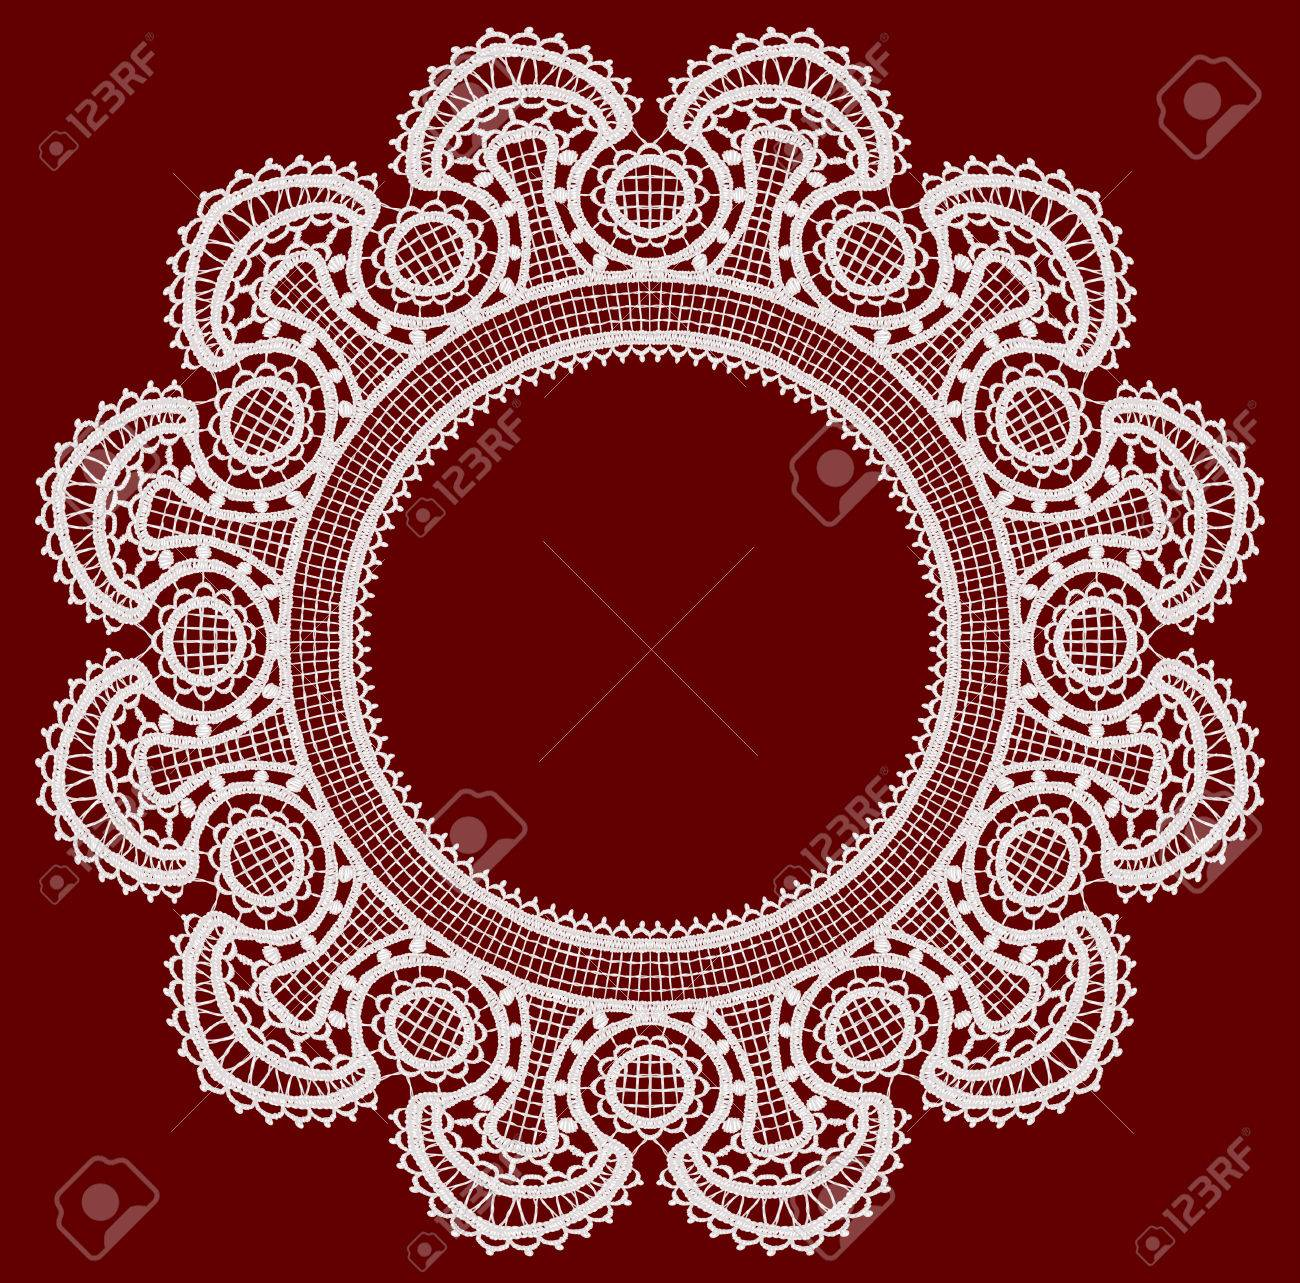 Round openwork lace border Stock Vector - 22474192